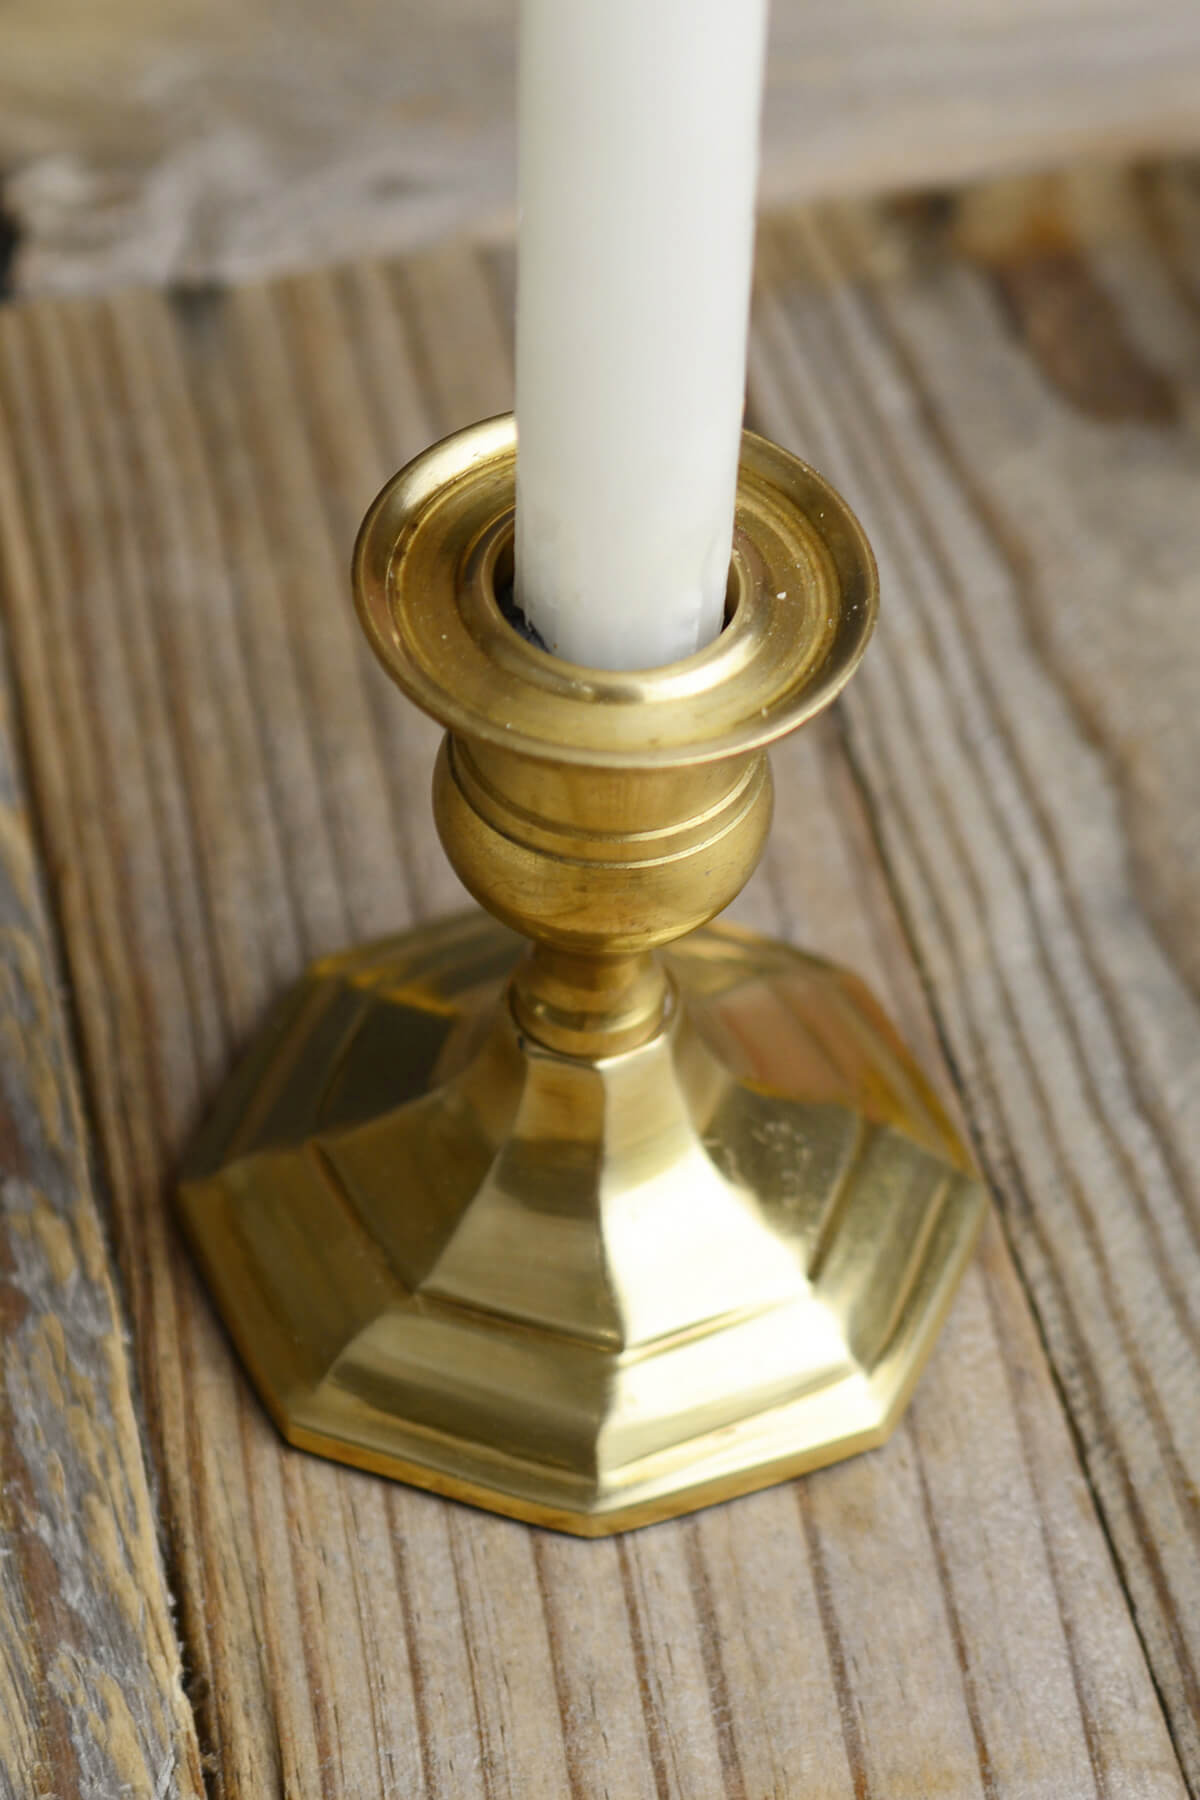 Gold Metal 3 Quot Taper Candle Holder Antique Candlestick